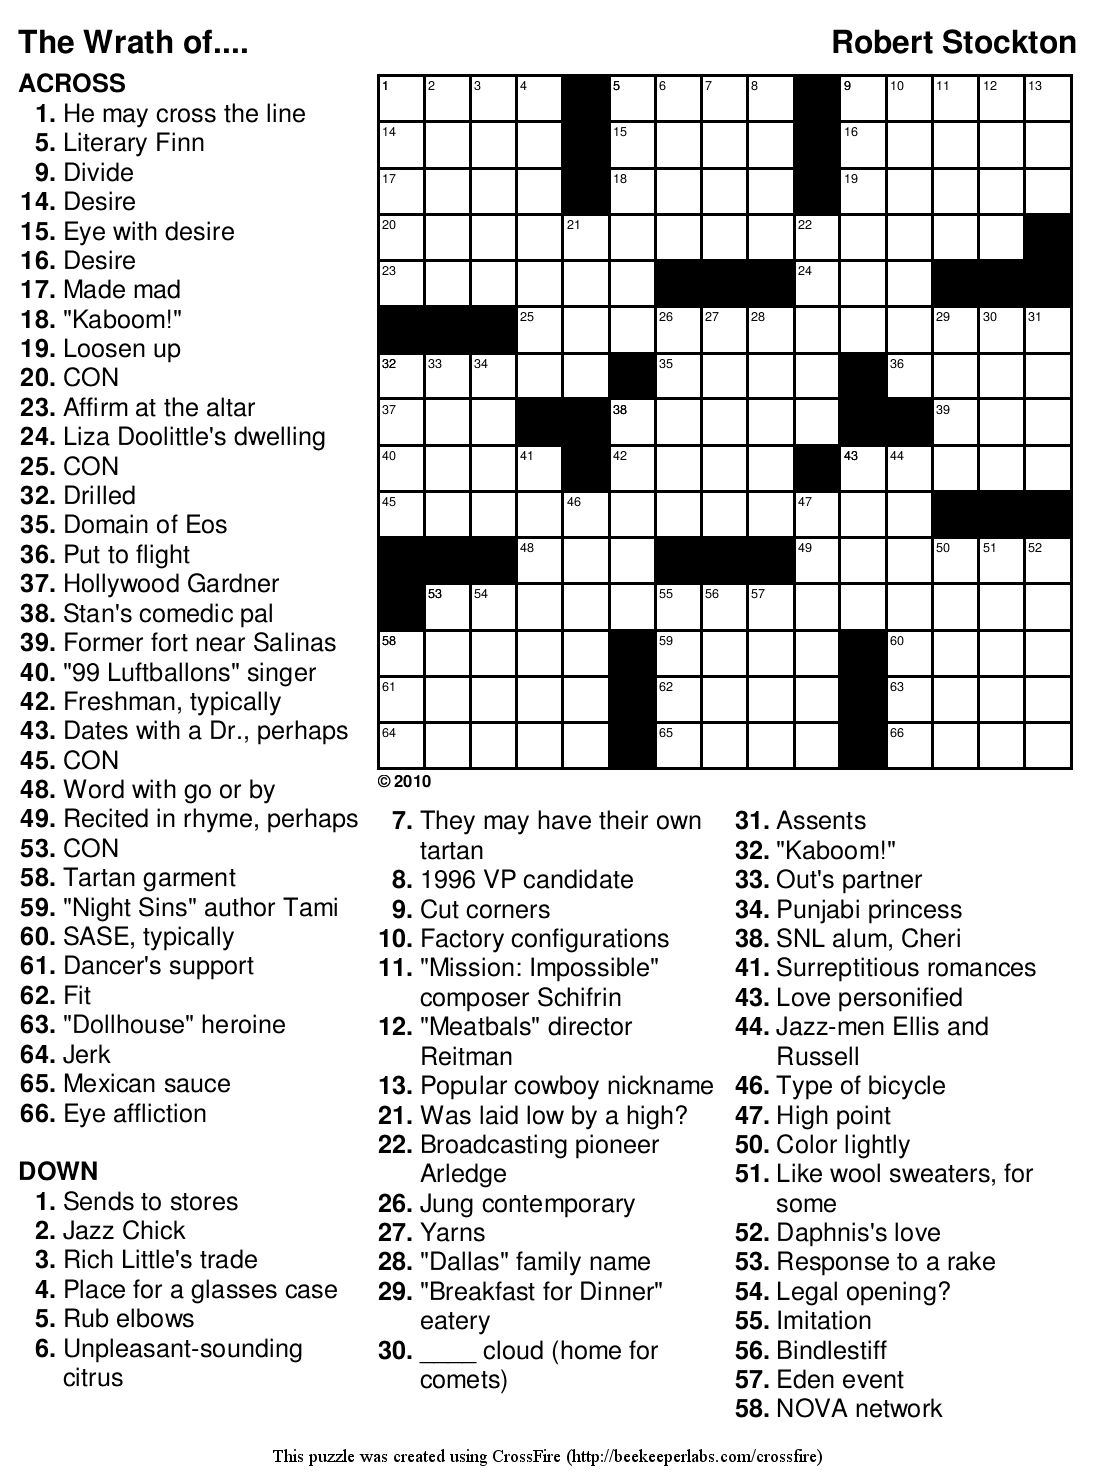 Marvelous Crossword Puzzles Easy Printable Free Org | Chas's Board - Make Your Own Crossword Puzzle Free Online Printable